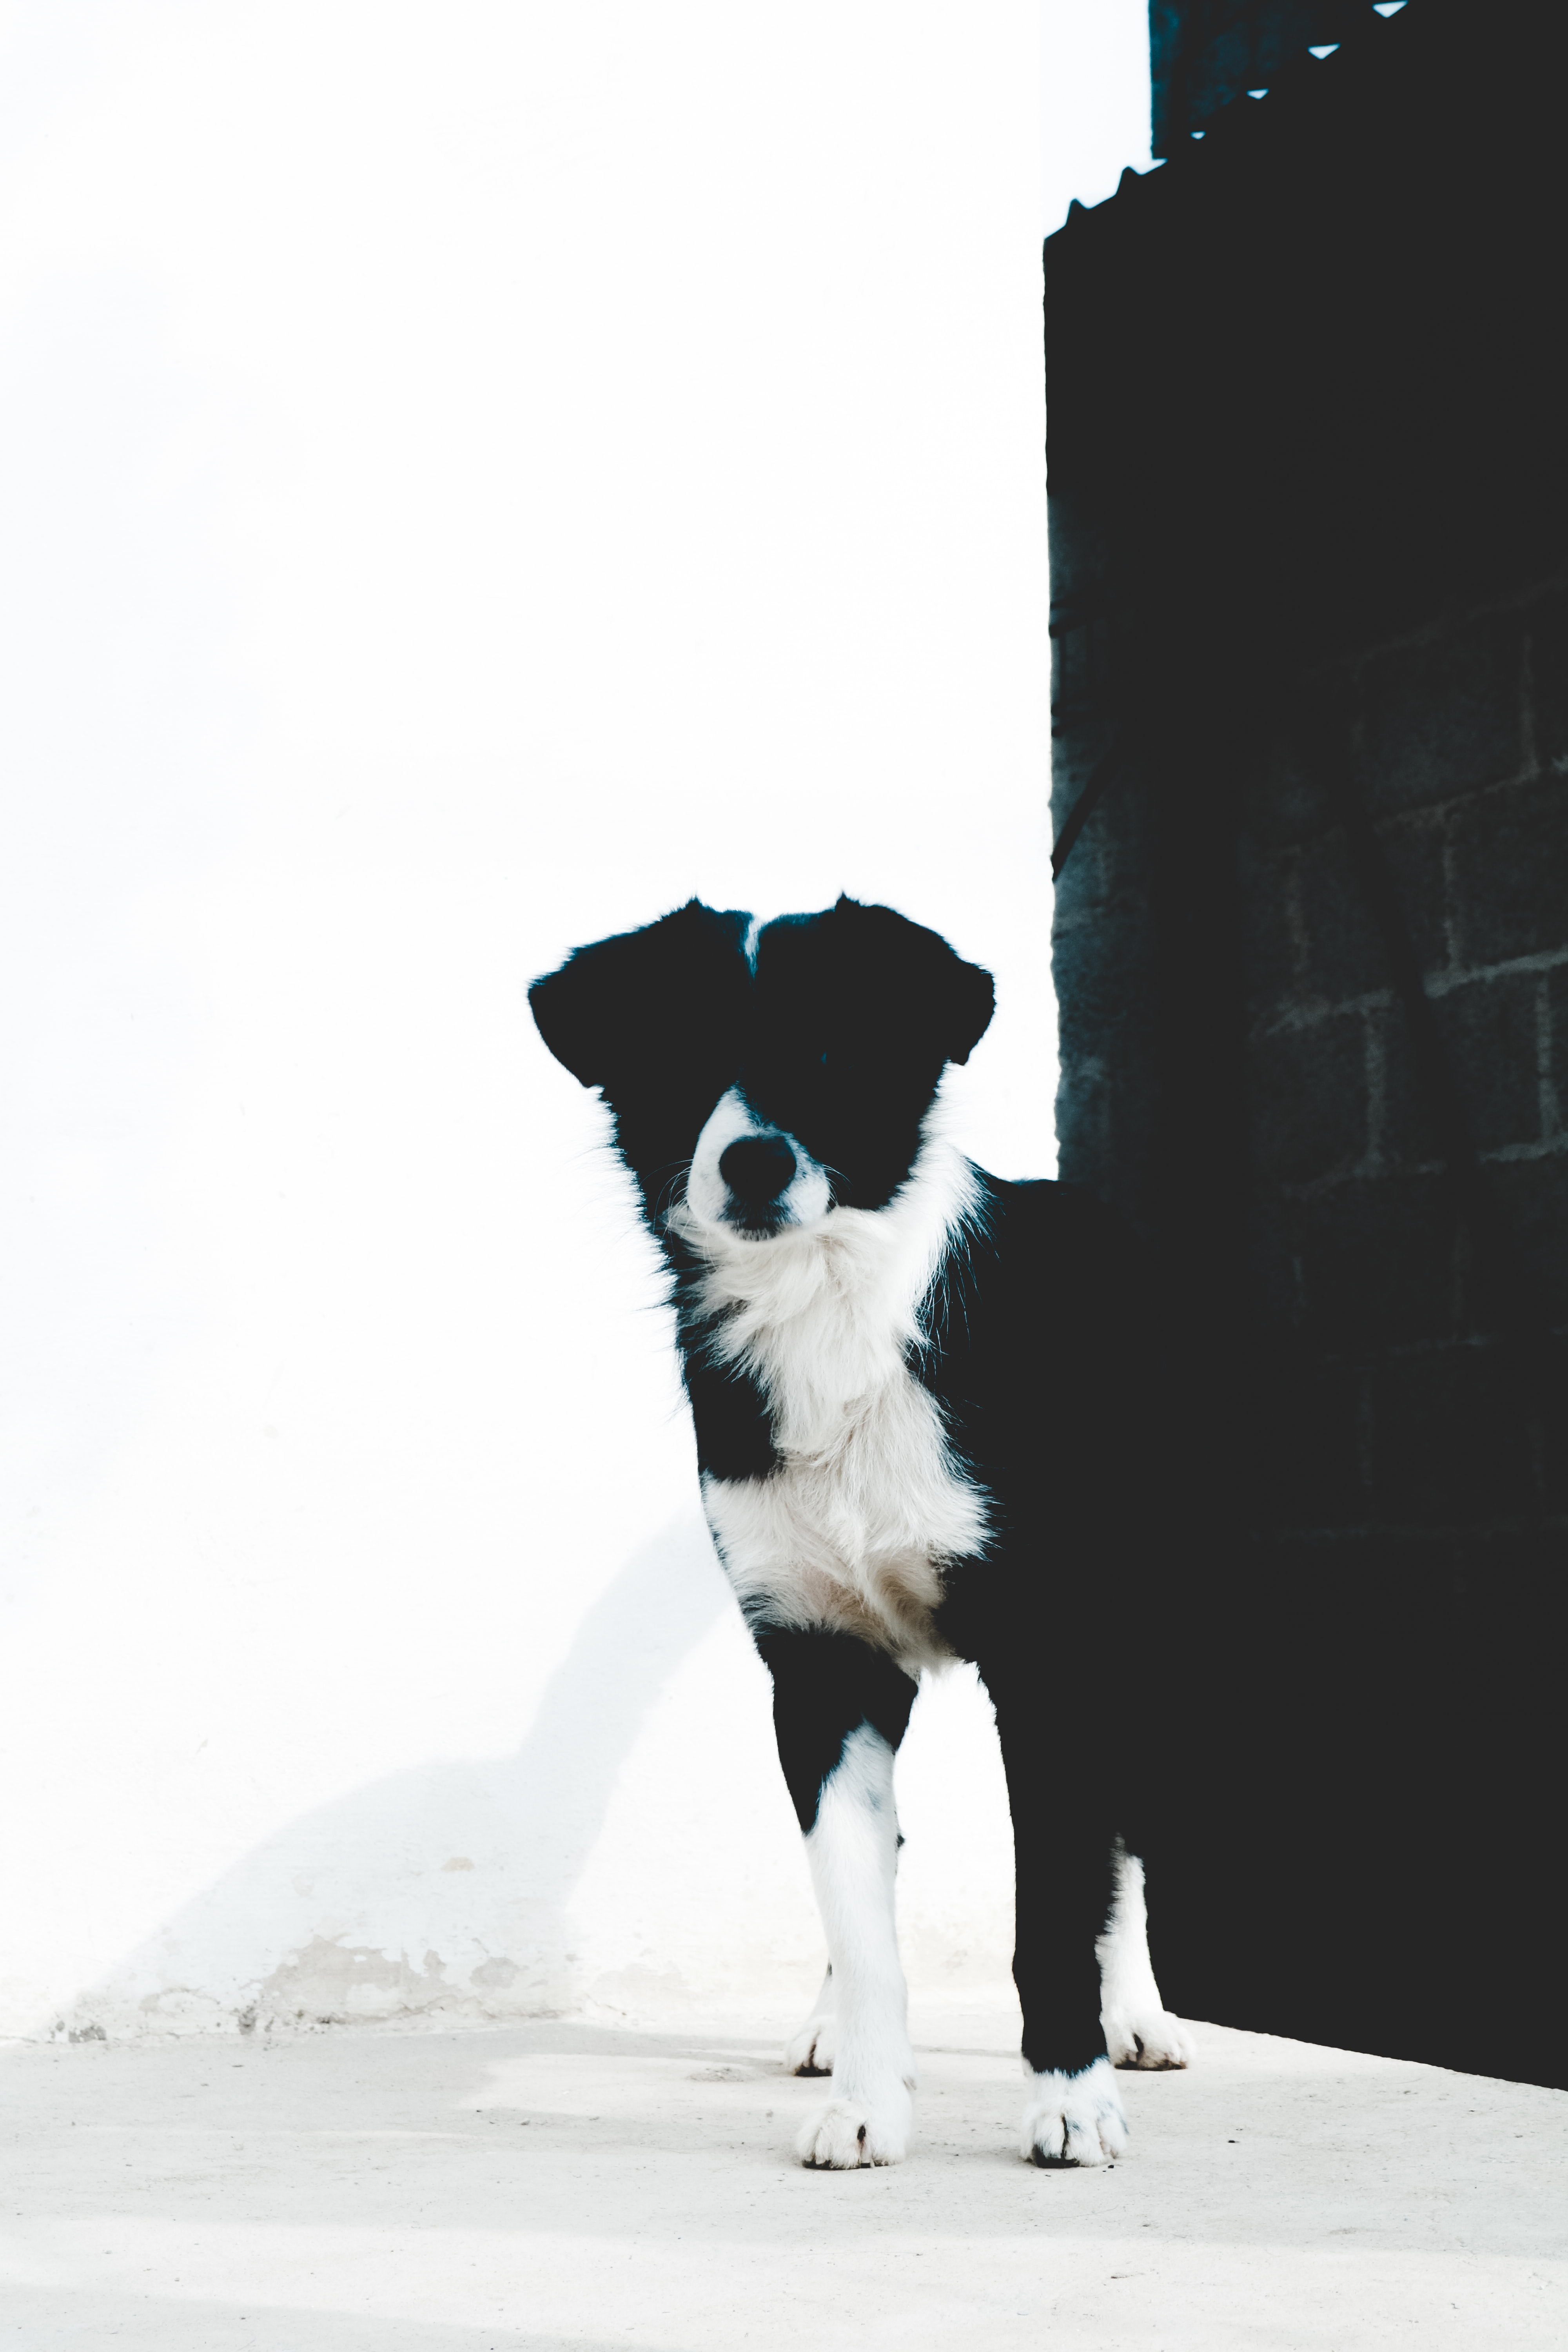 short-coated black and white dog standing near black concrete brick wall